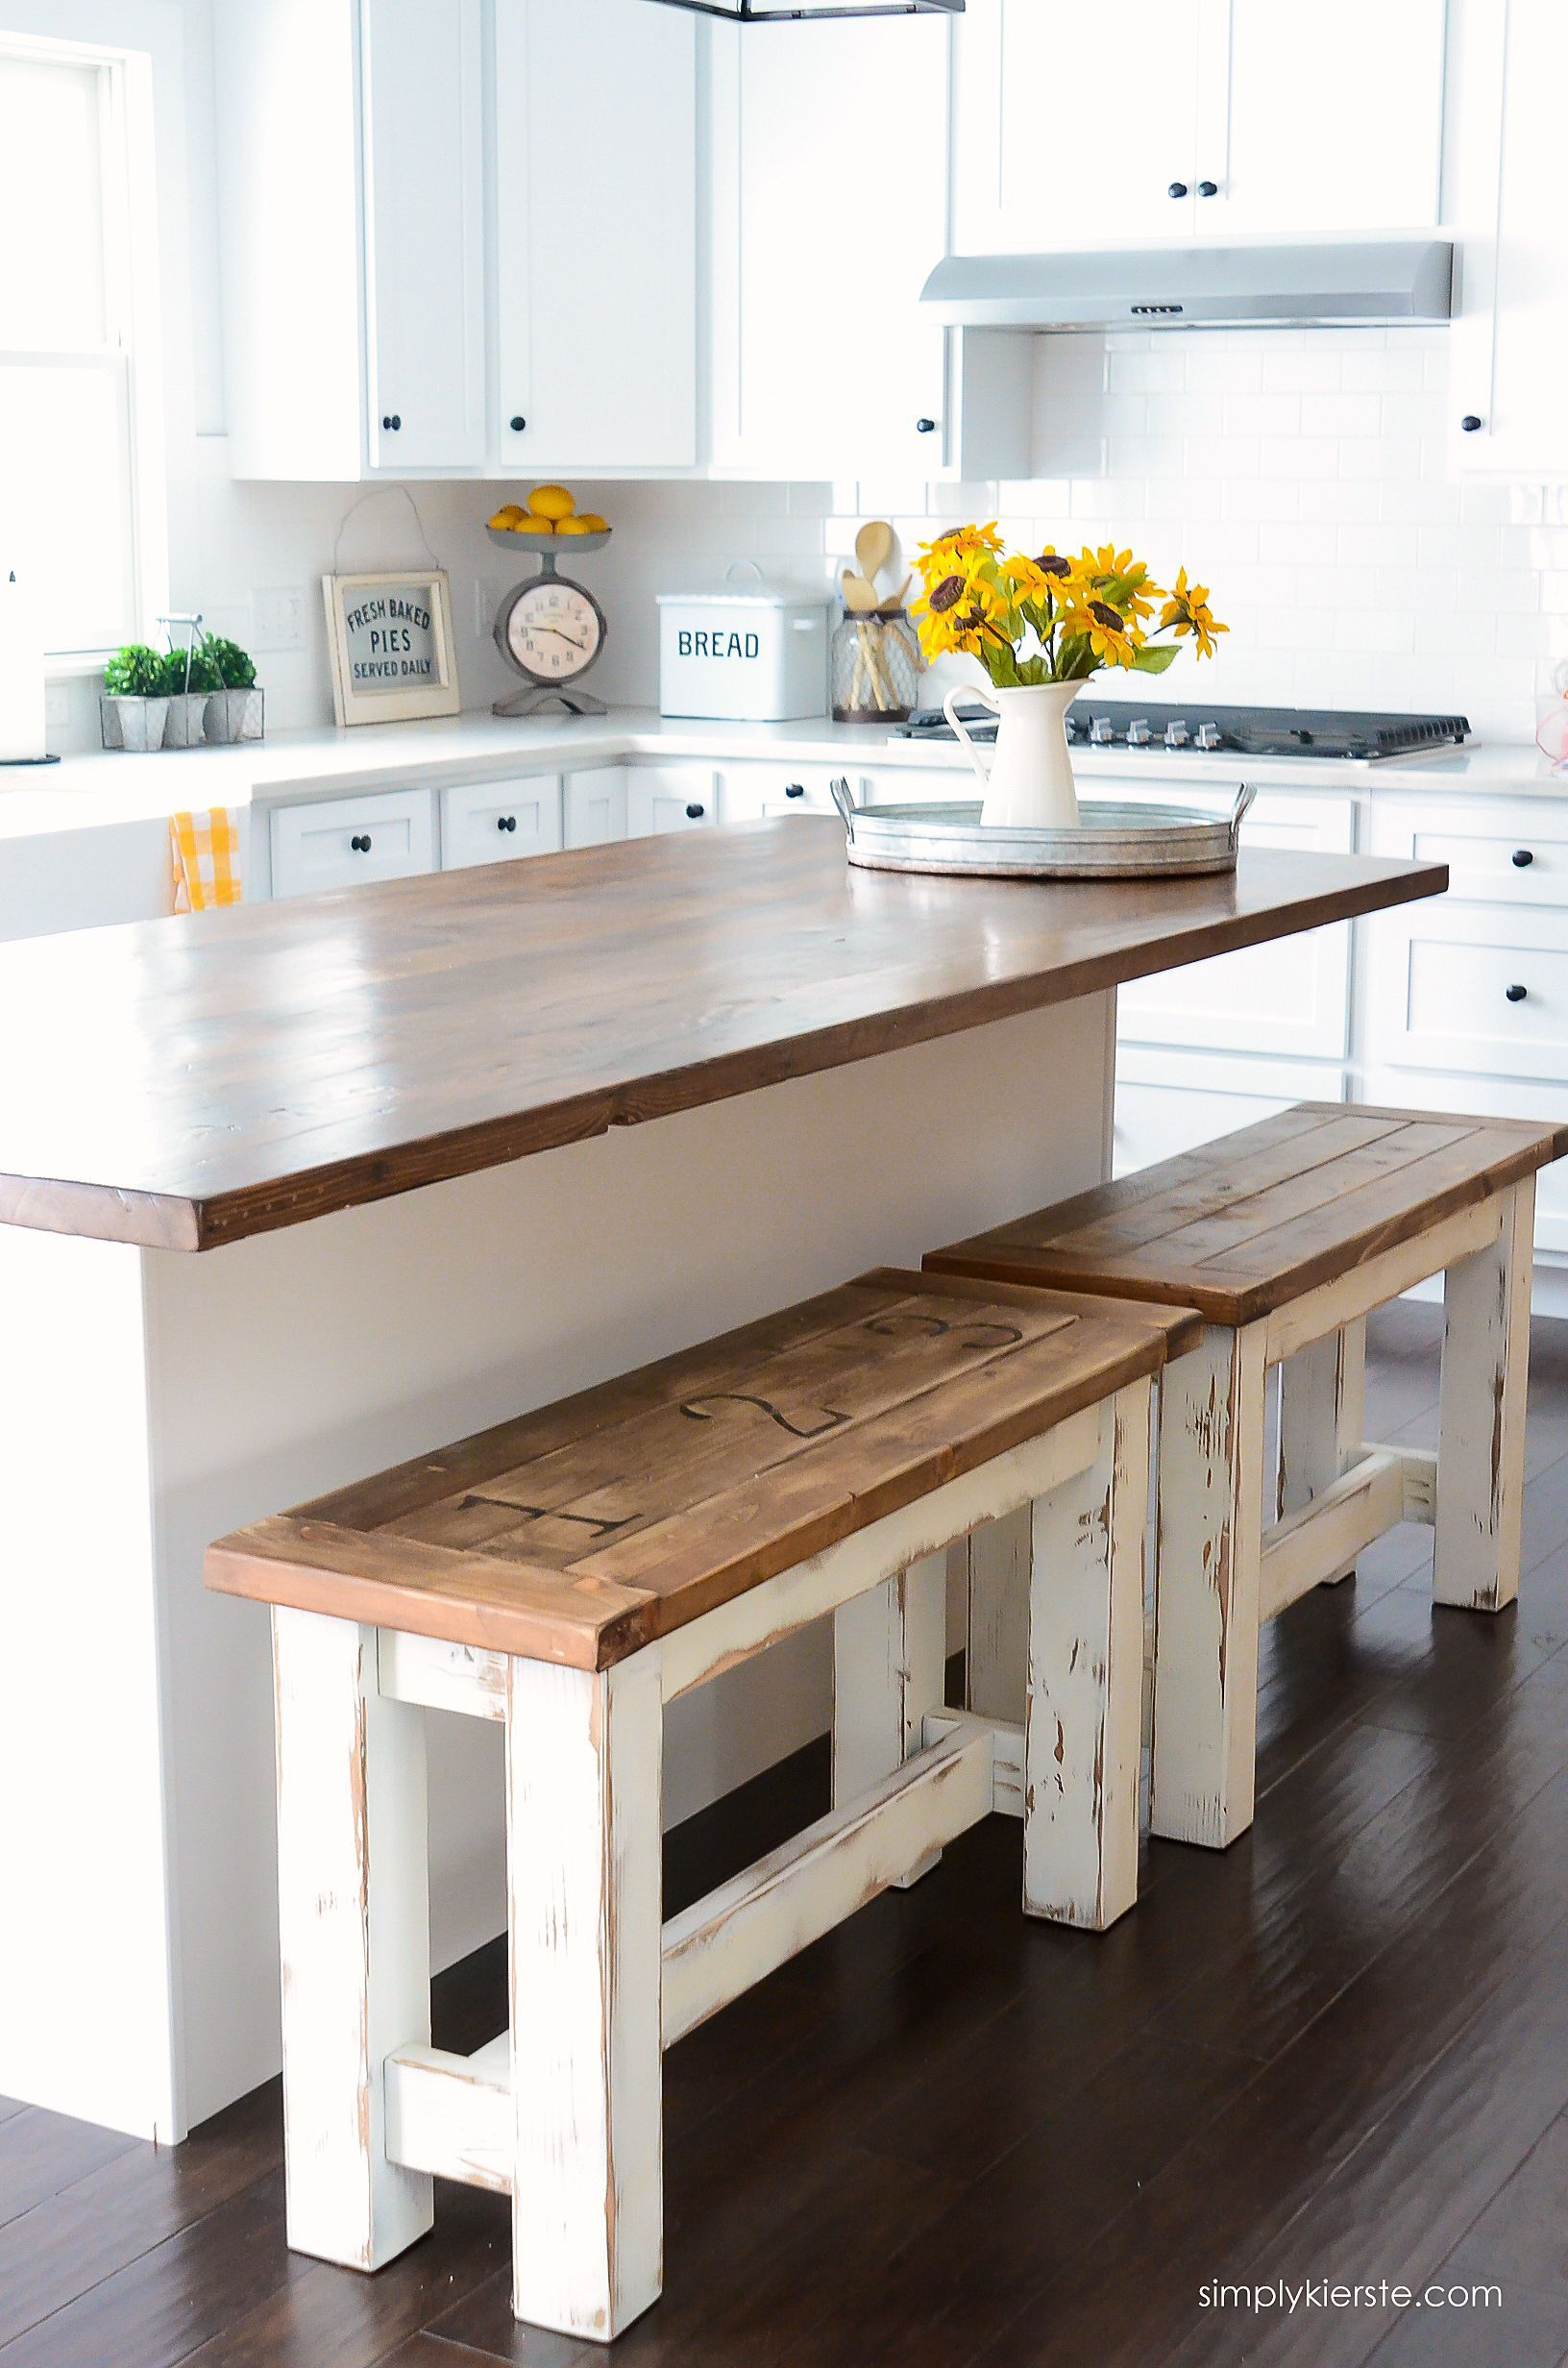 12 Inspirational Kitchen Islands Ideas | Pinterest